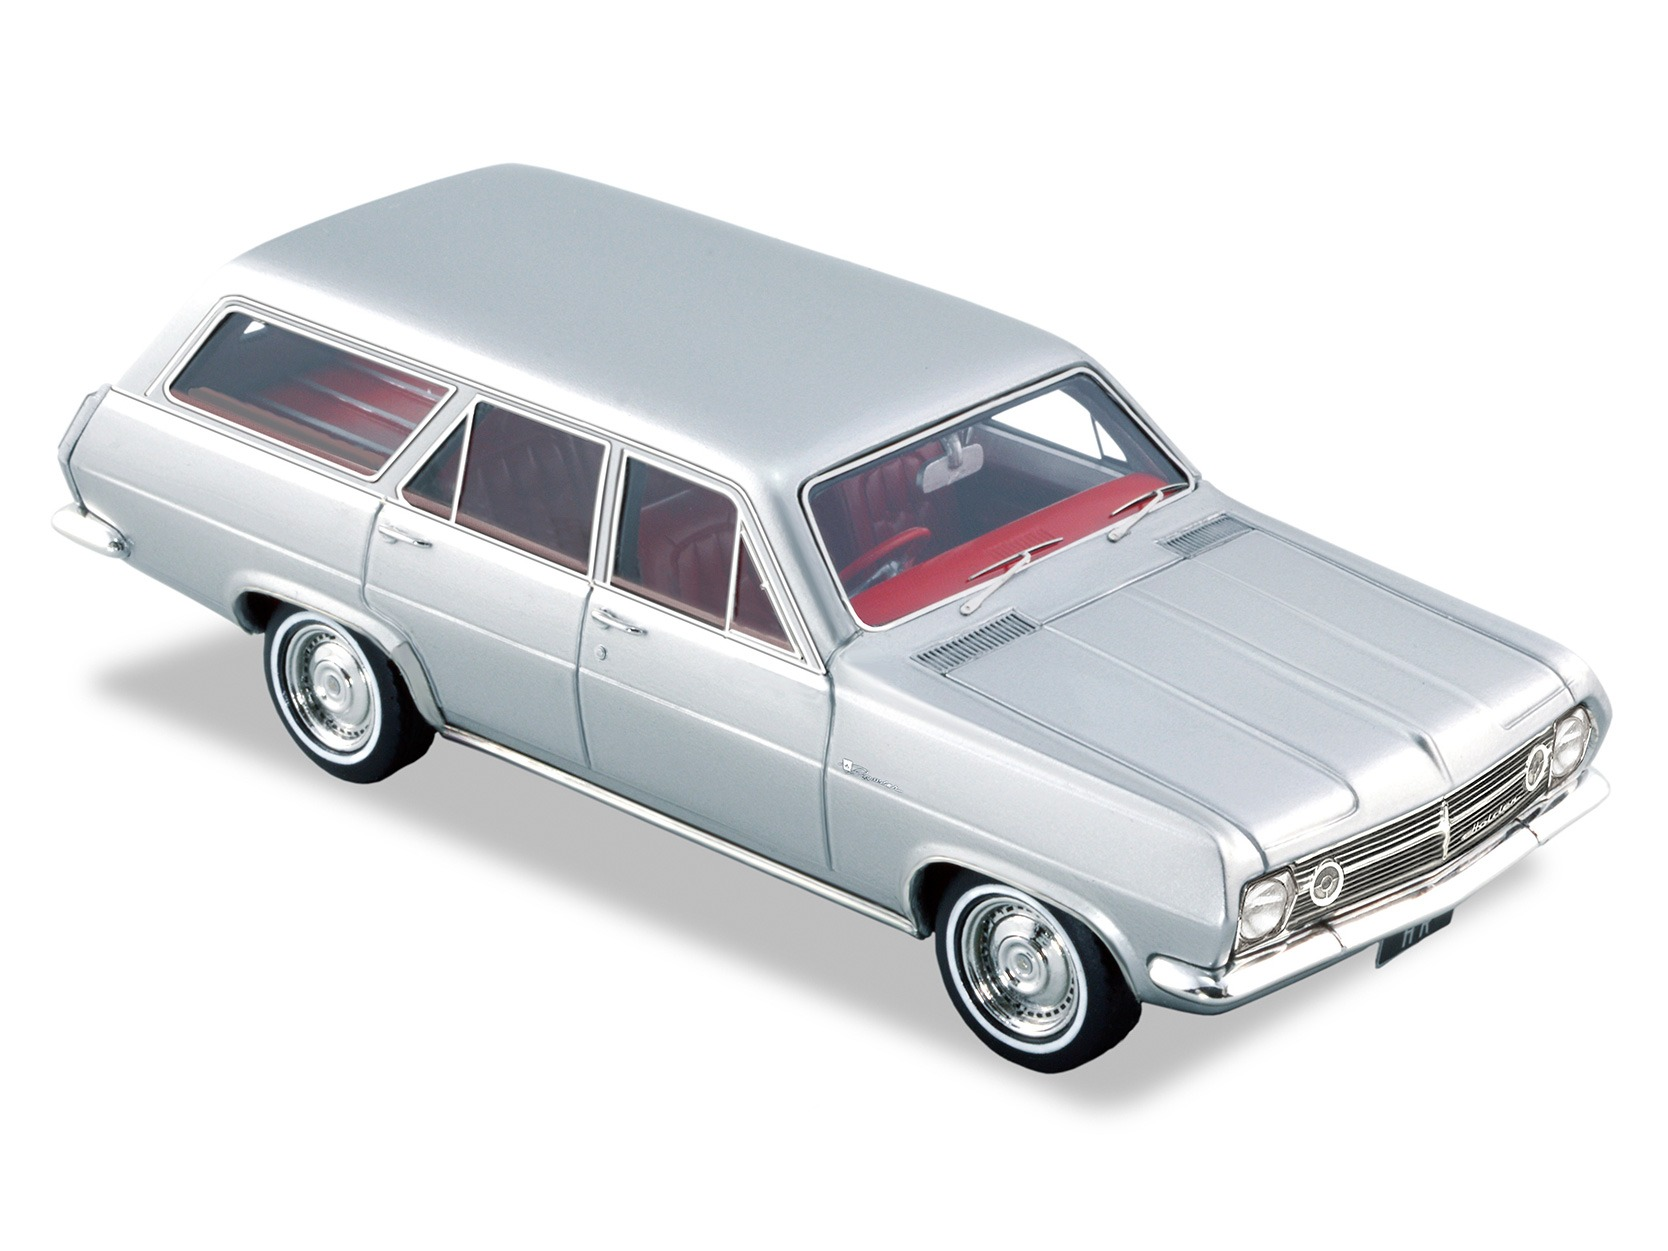 1967 HR Station Wagon – Silver